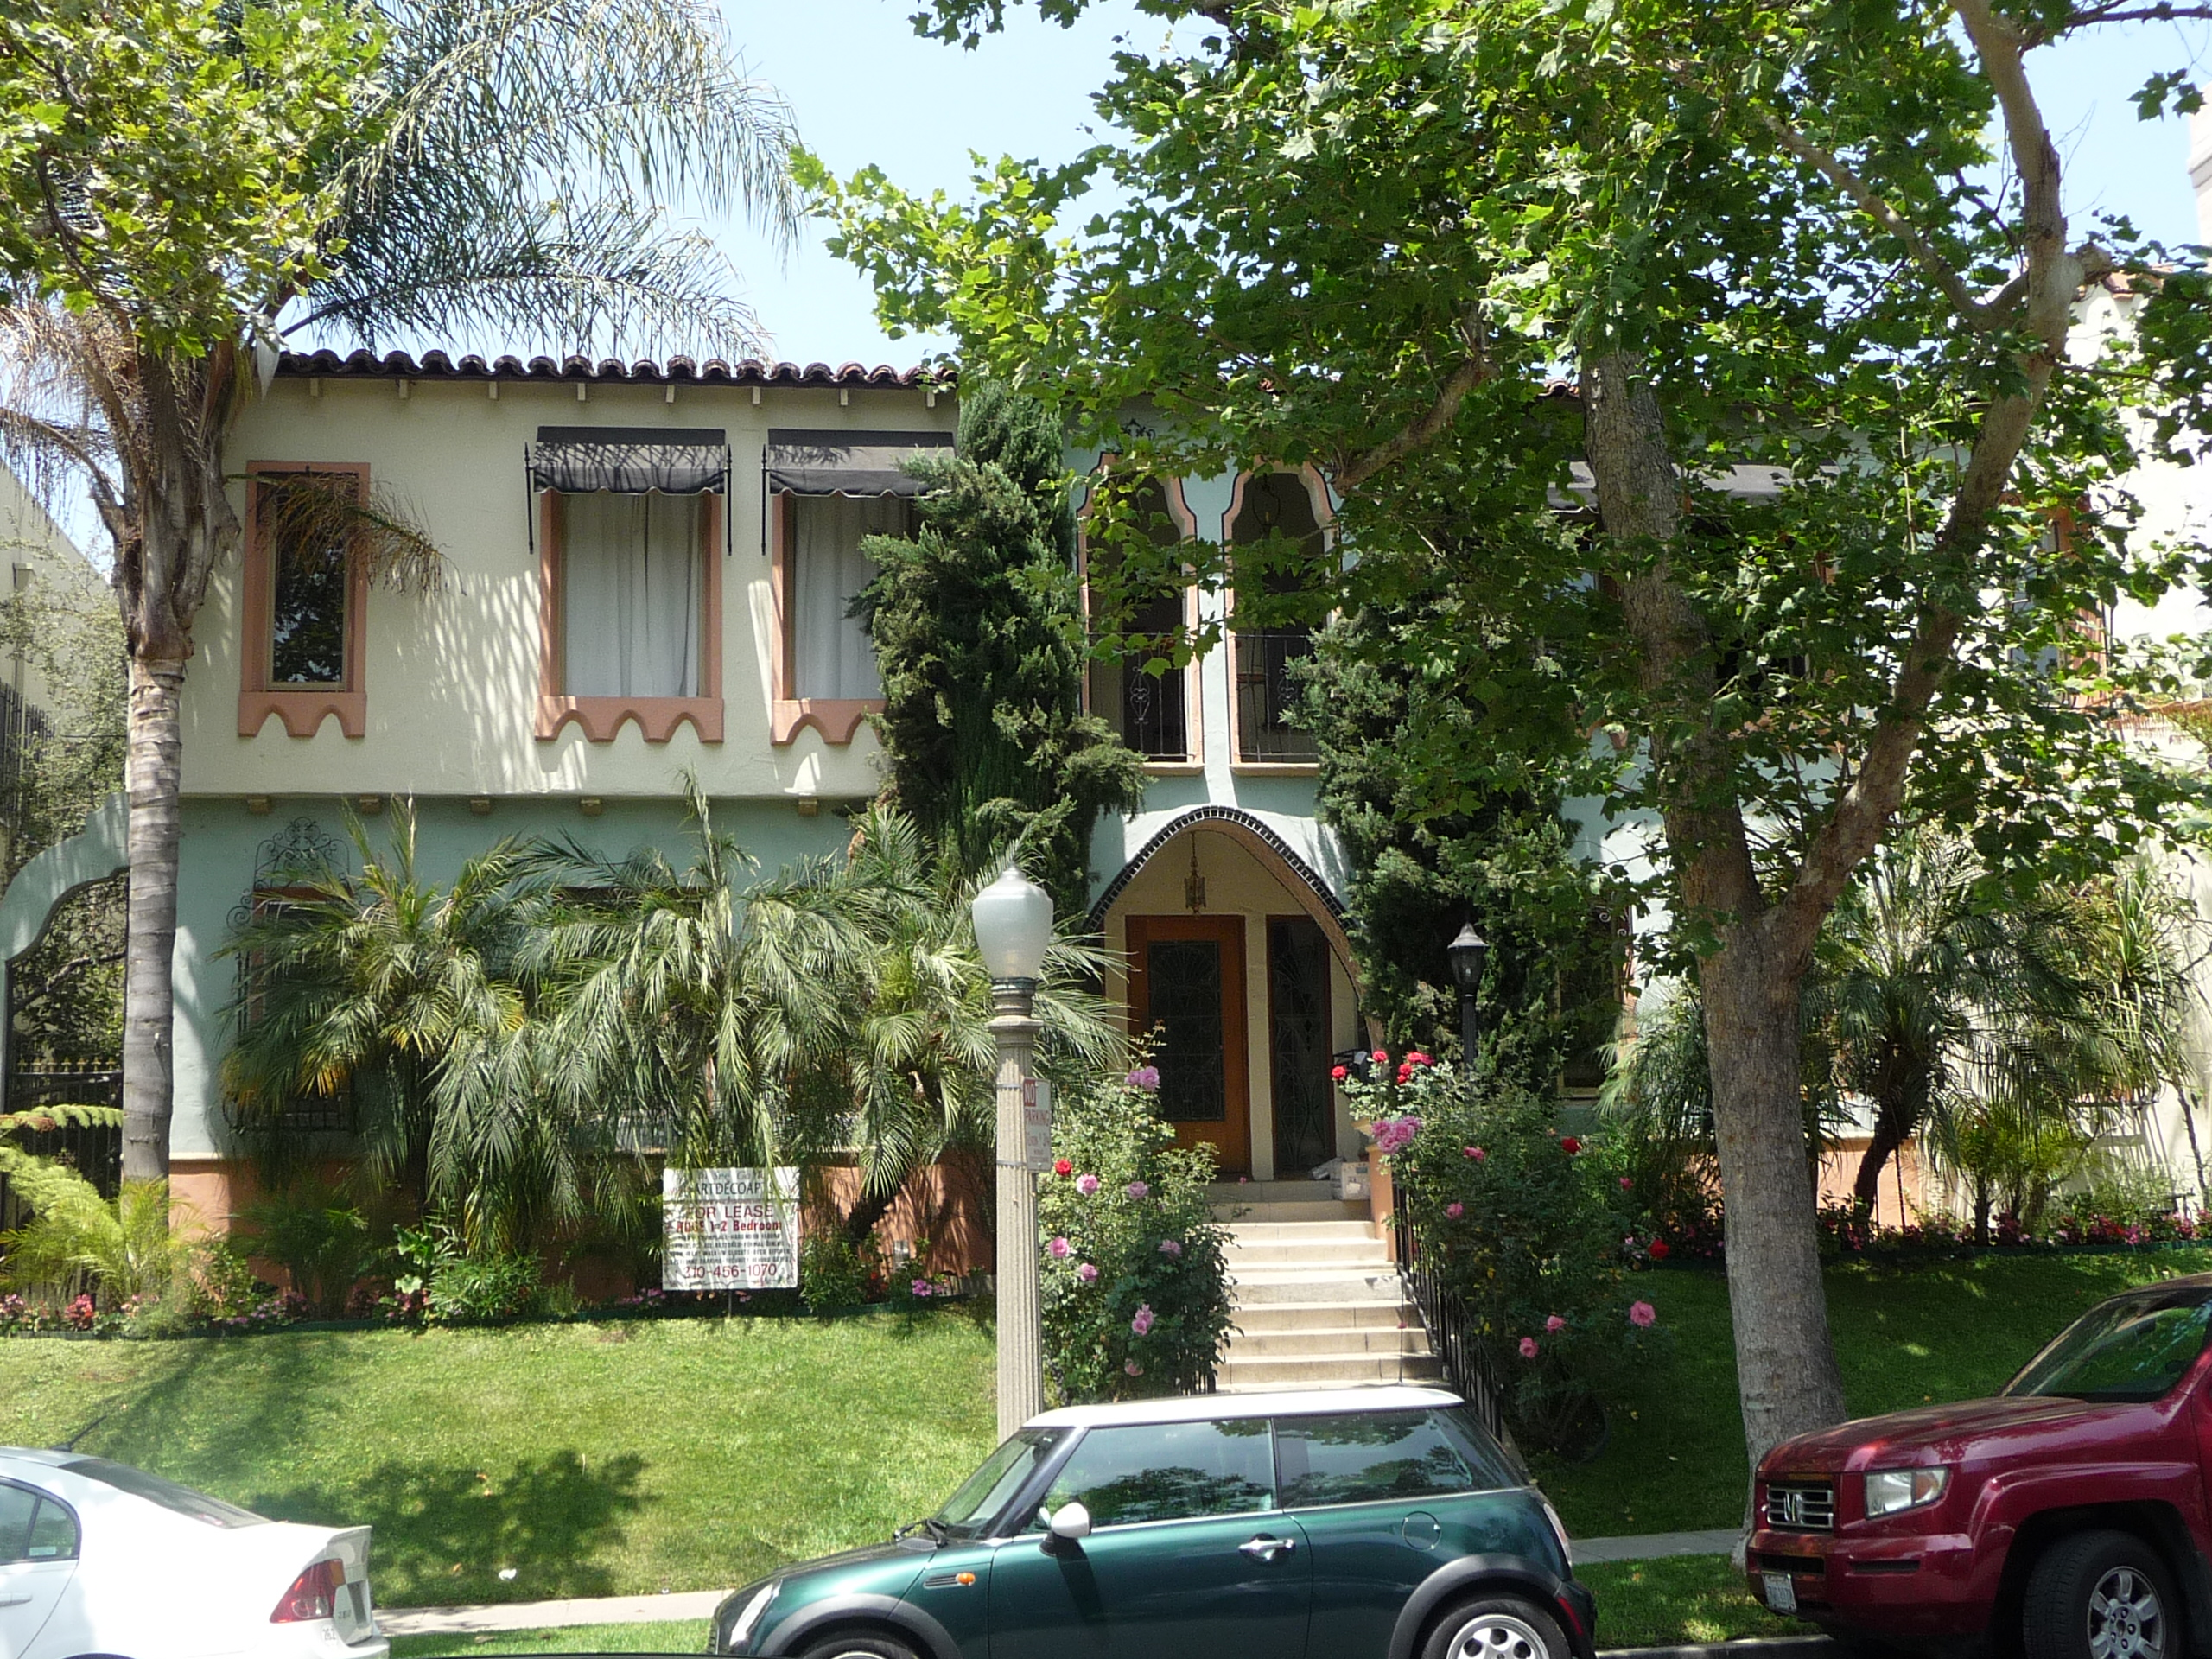 415 N SYCAMORE AVE - PHOTO